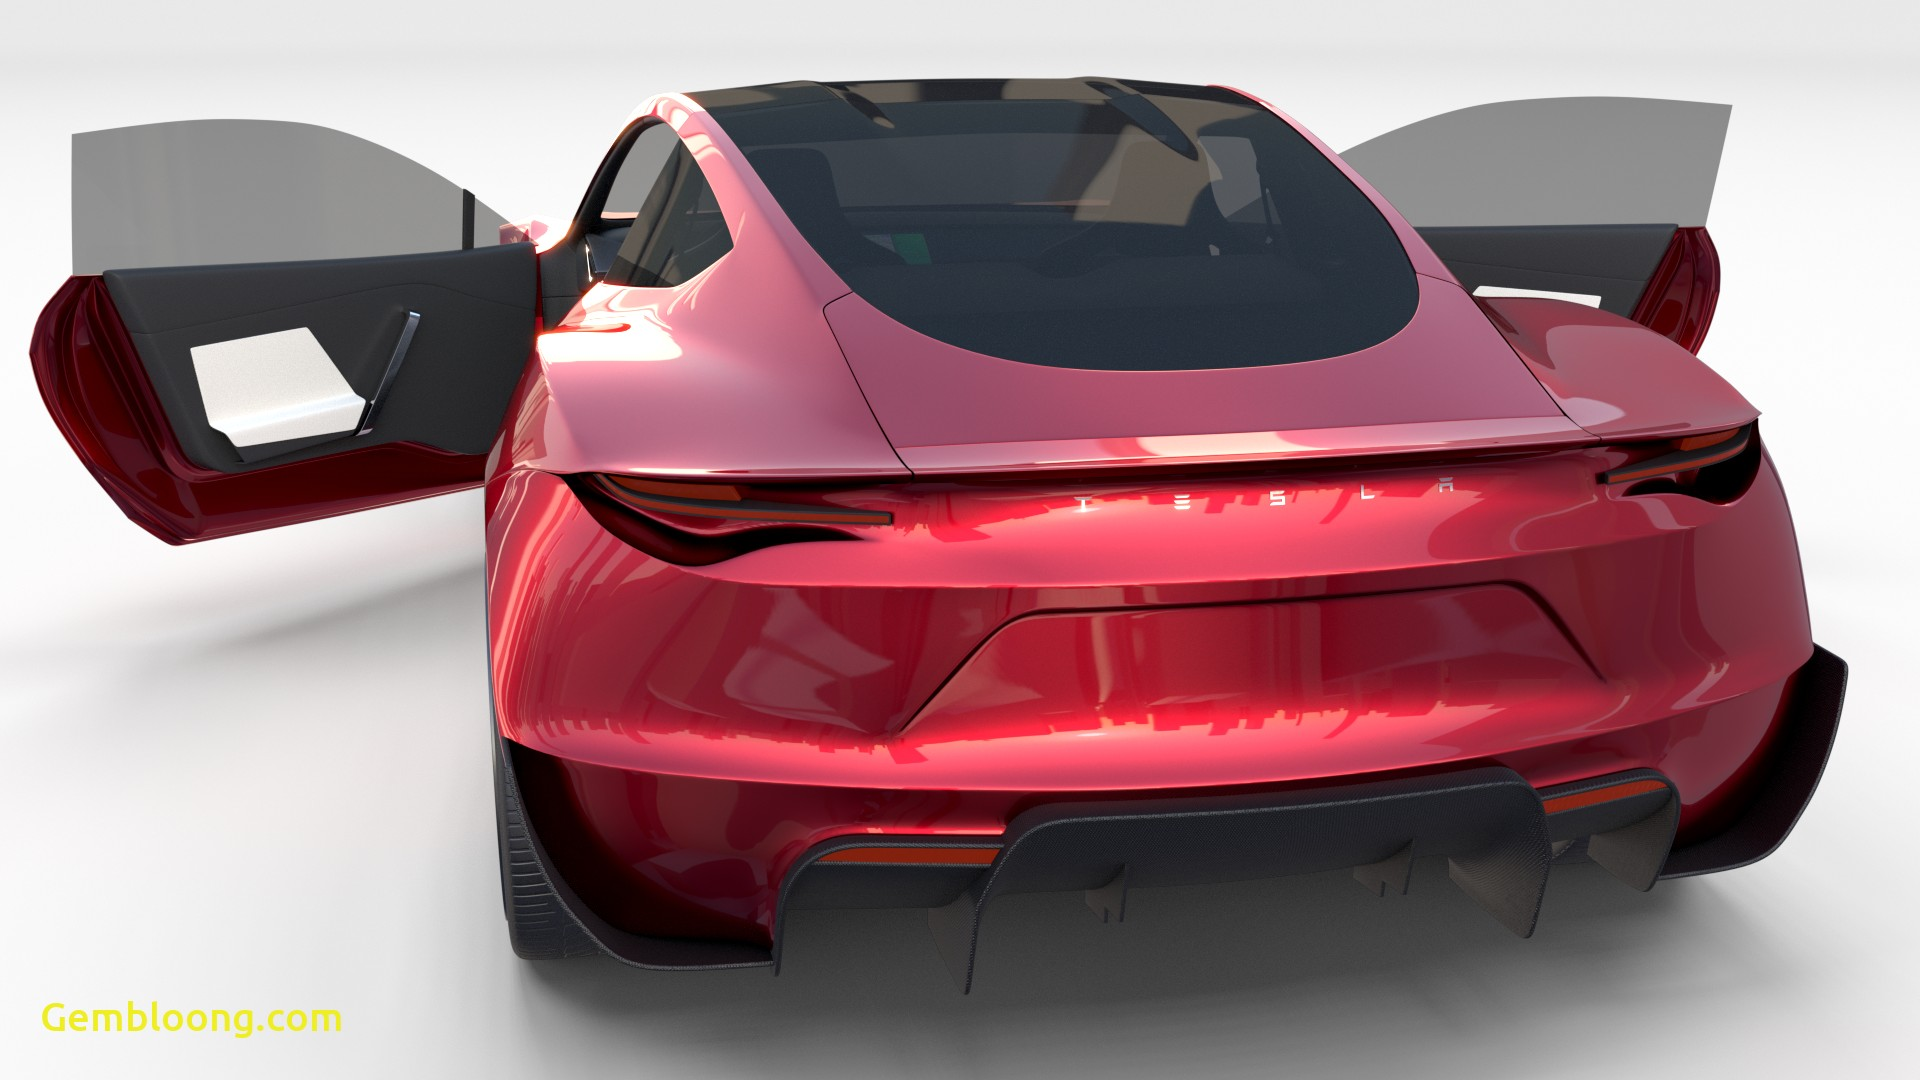 Tesla 2020 Elegant Tesla Roadster Model S X 3 with Interiors and Chassis